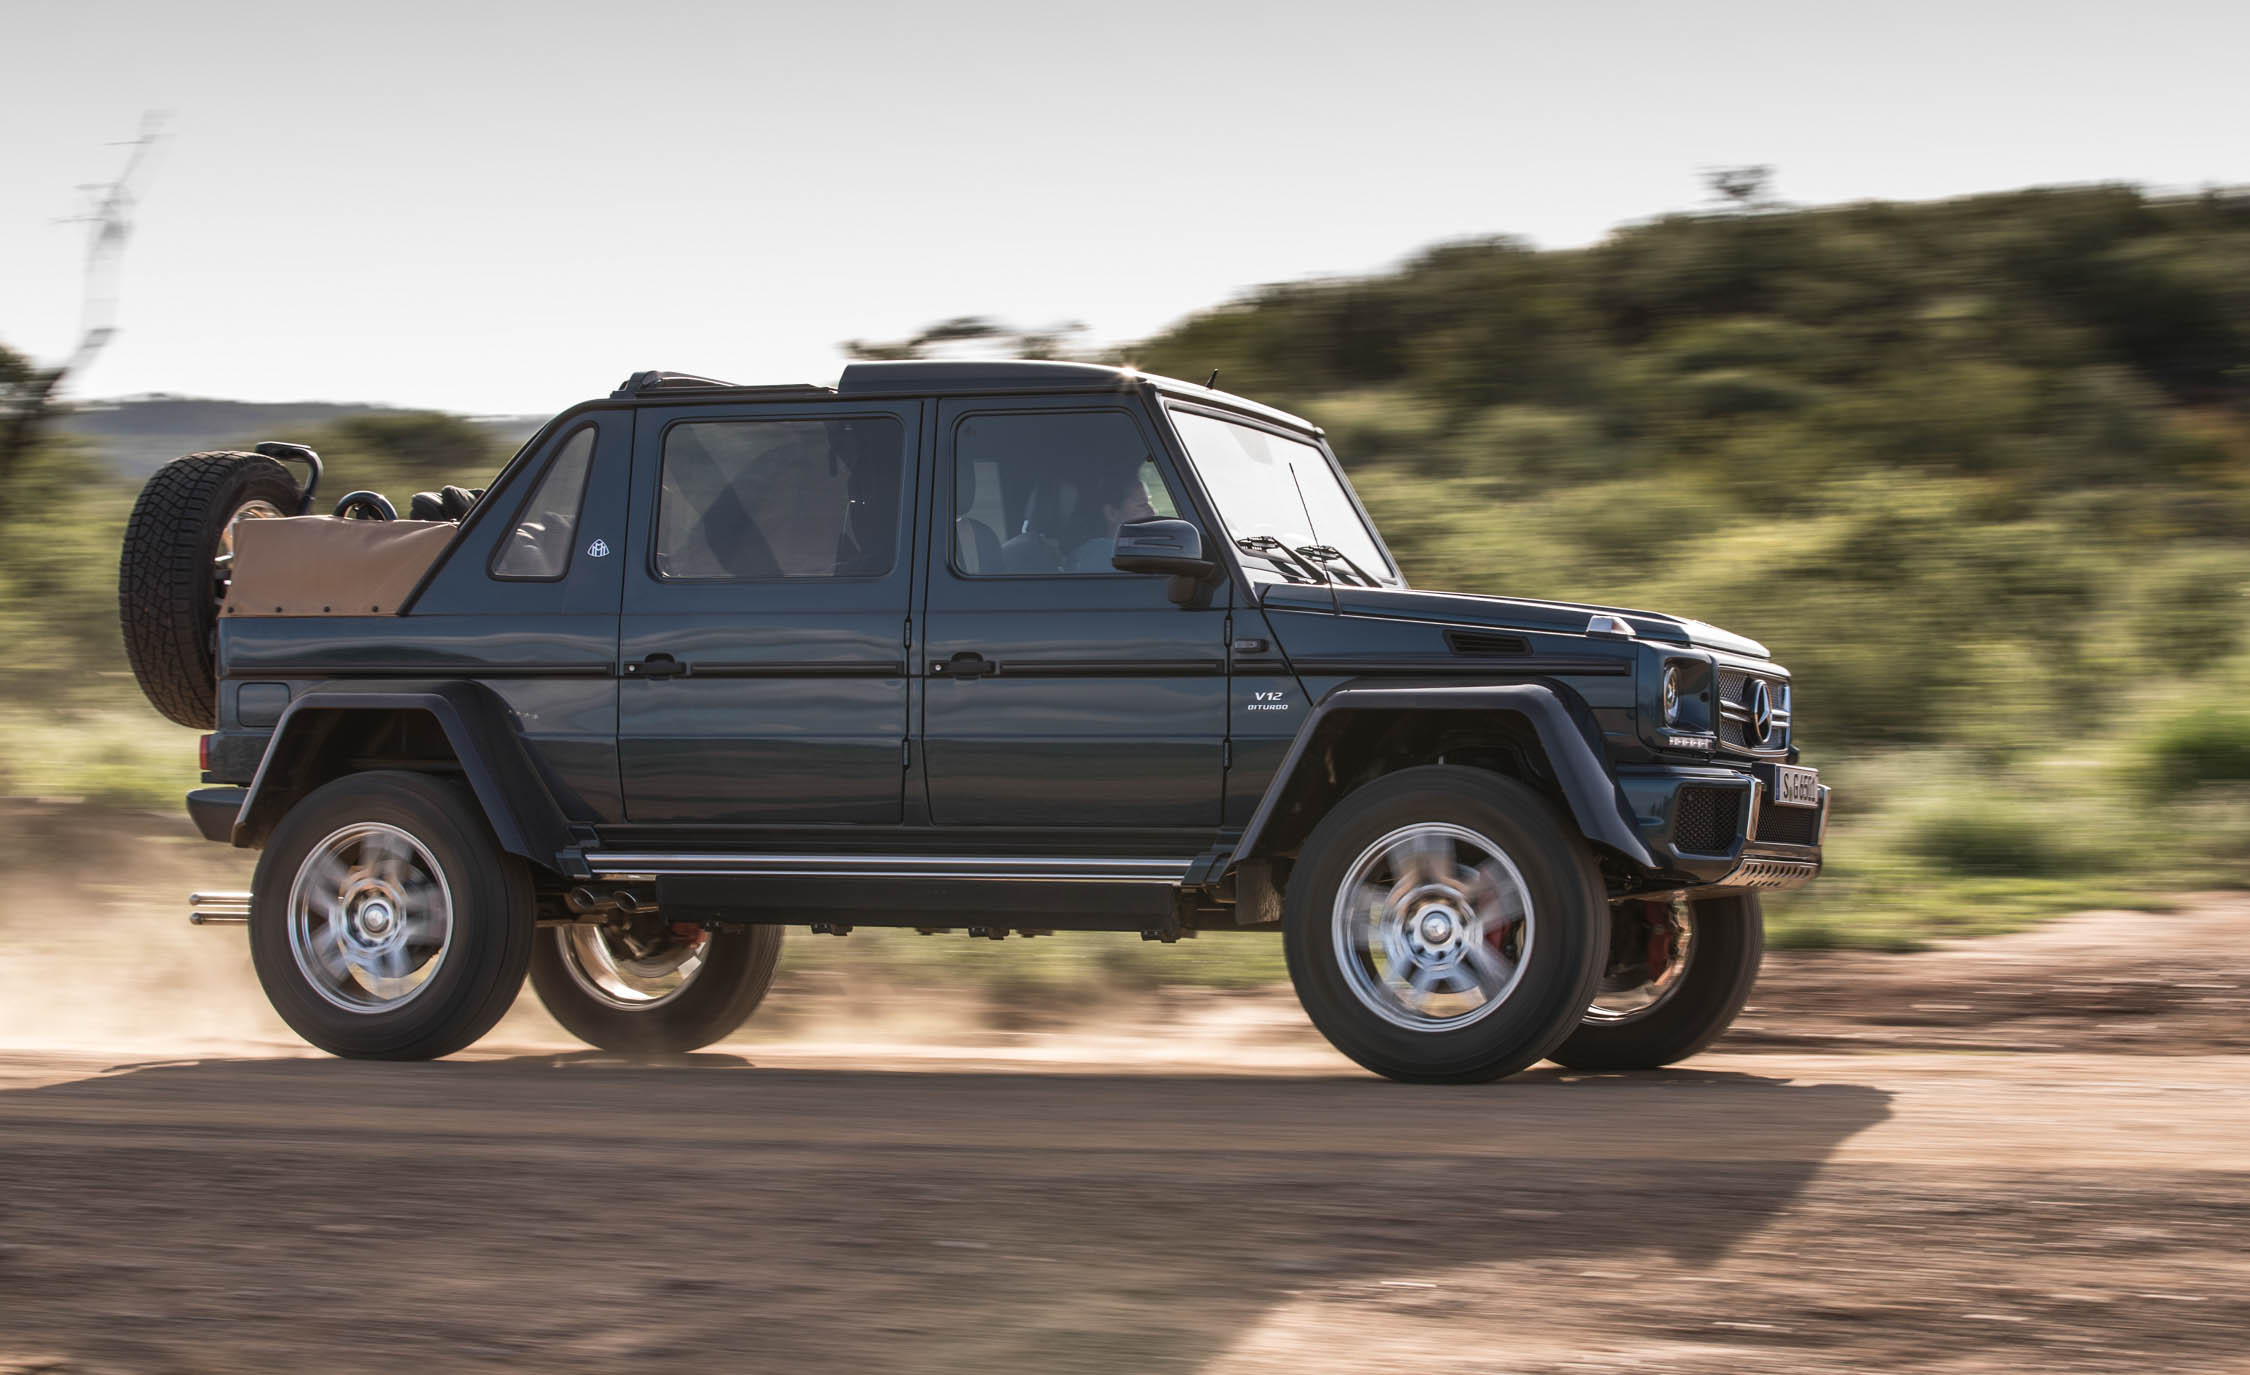 2018 Mercedes Maybach G650 Landaulet Test Drive Side Preview (View 10 of 52)